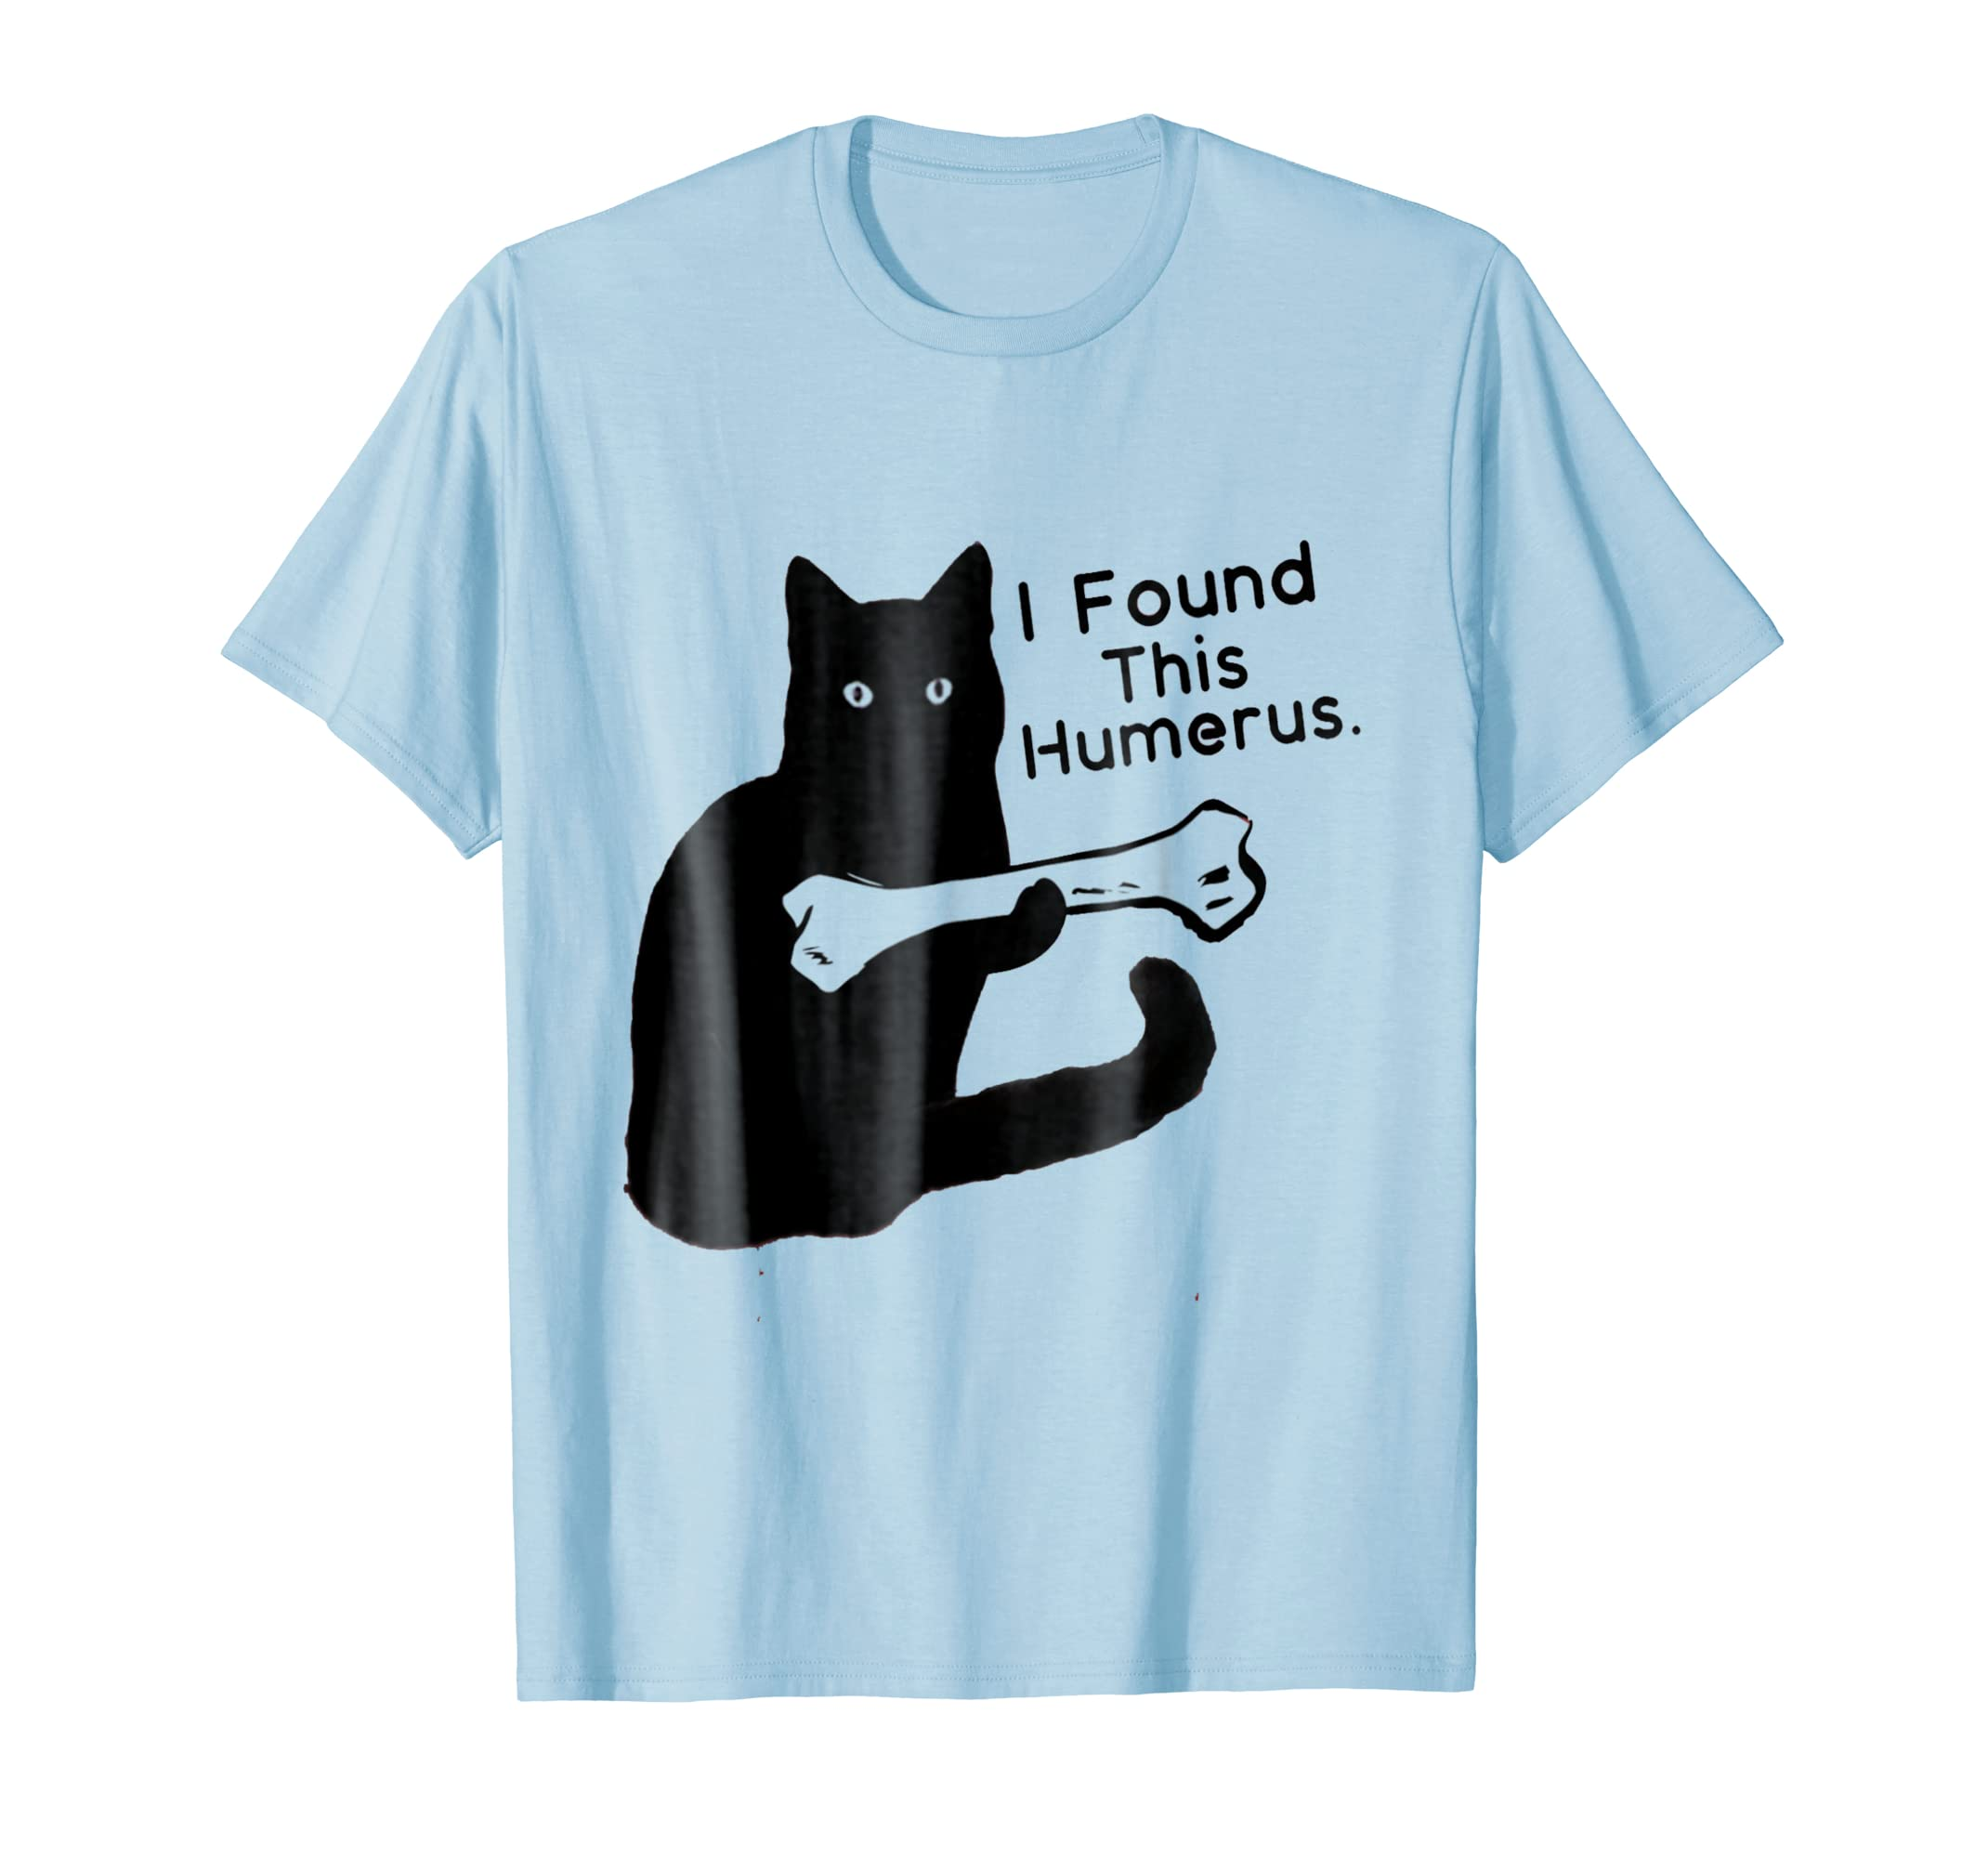 6a23f273 Amazon.com: Funny T-Shirt I Found This Humerus cats- Humourous Pun: Clothing